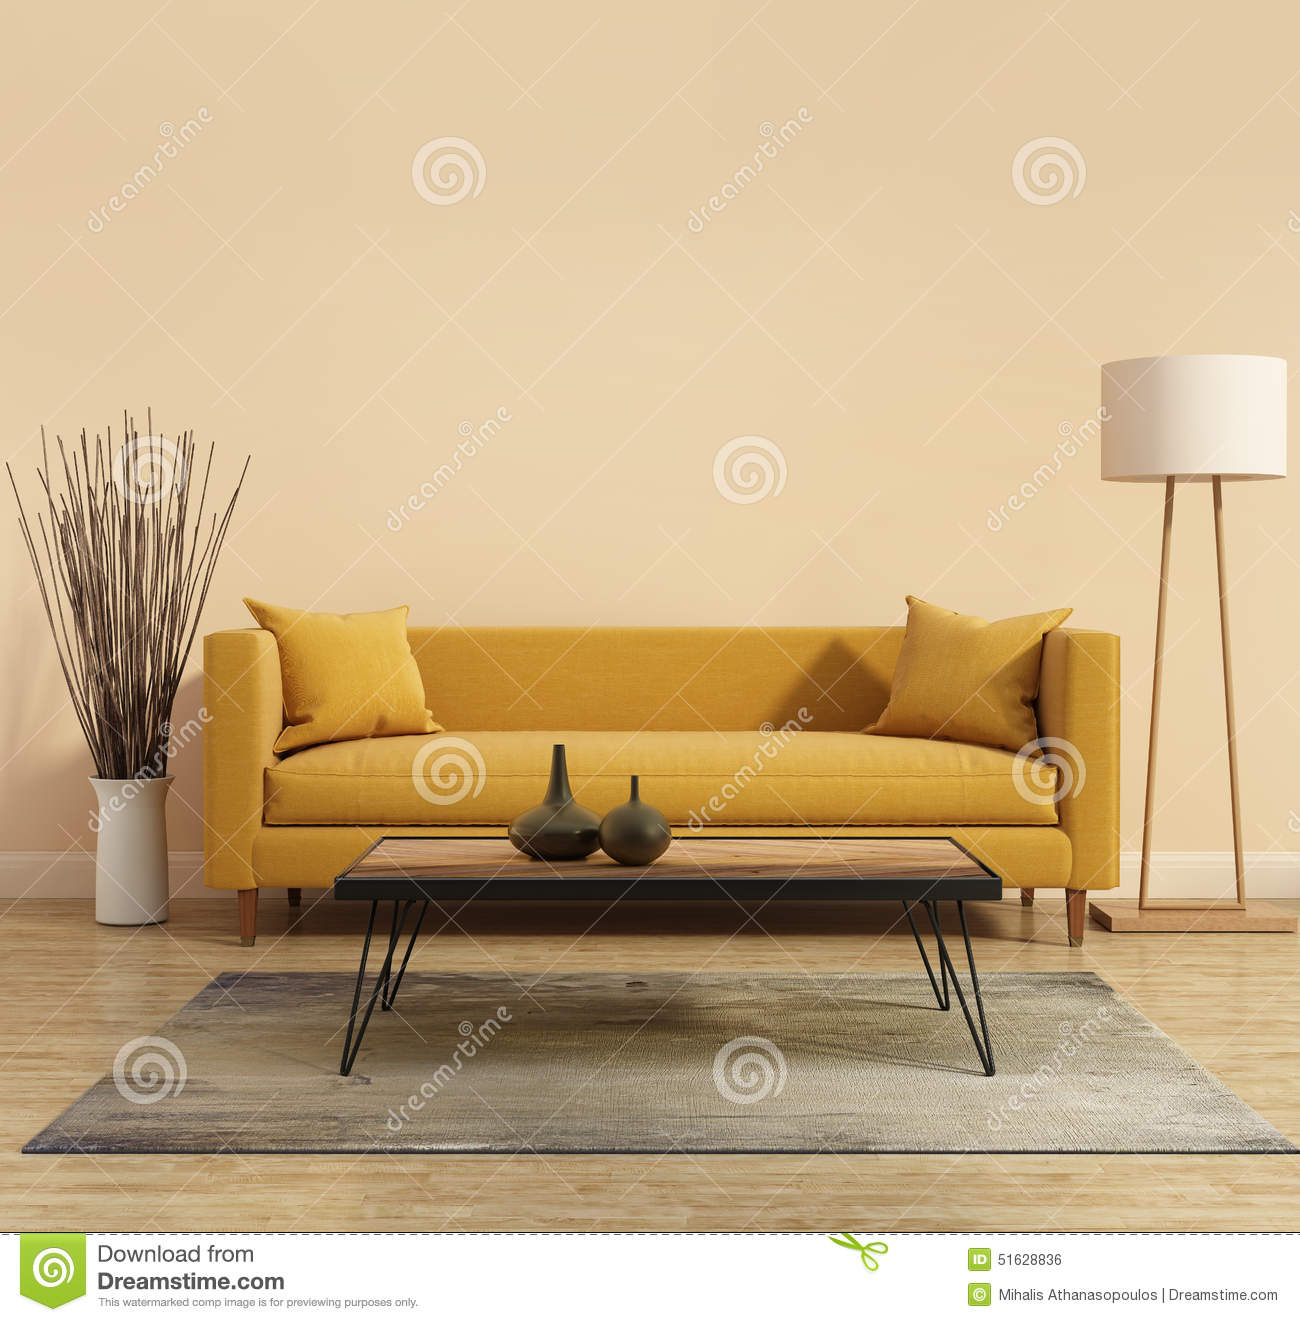 Living Room Yellow Sofa modern modern interior with a yellow sofa in the living room with